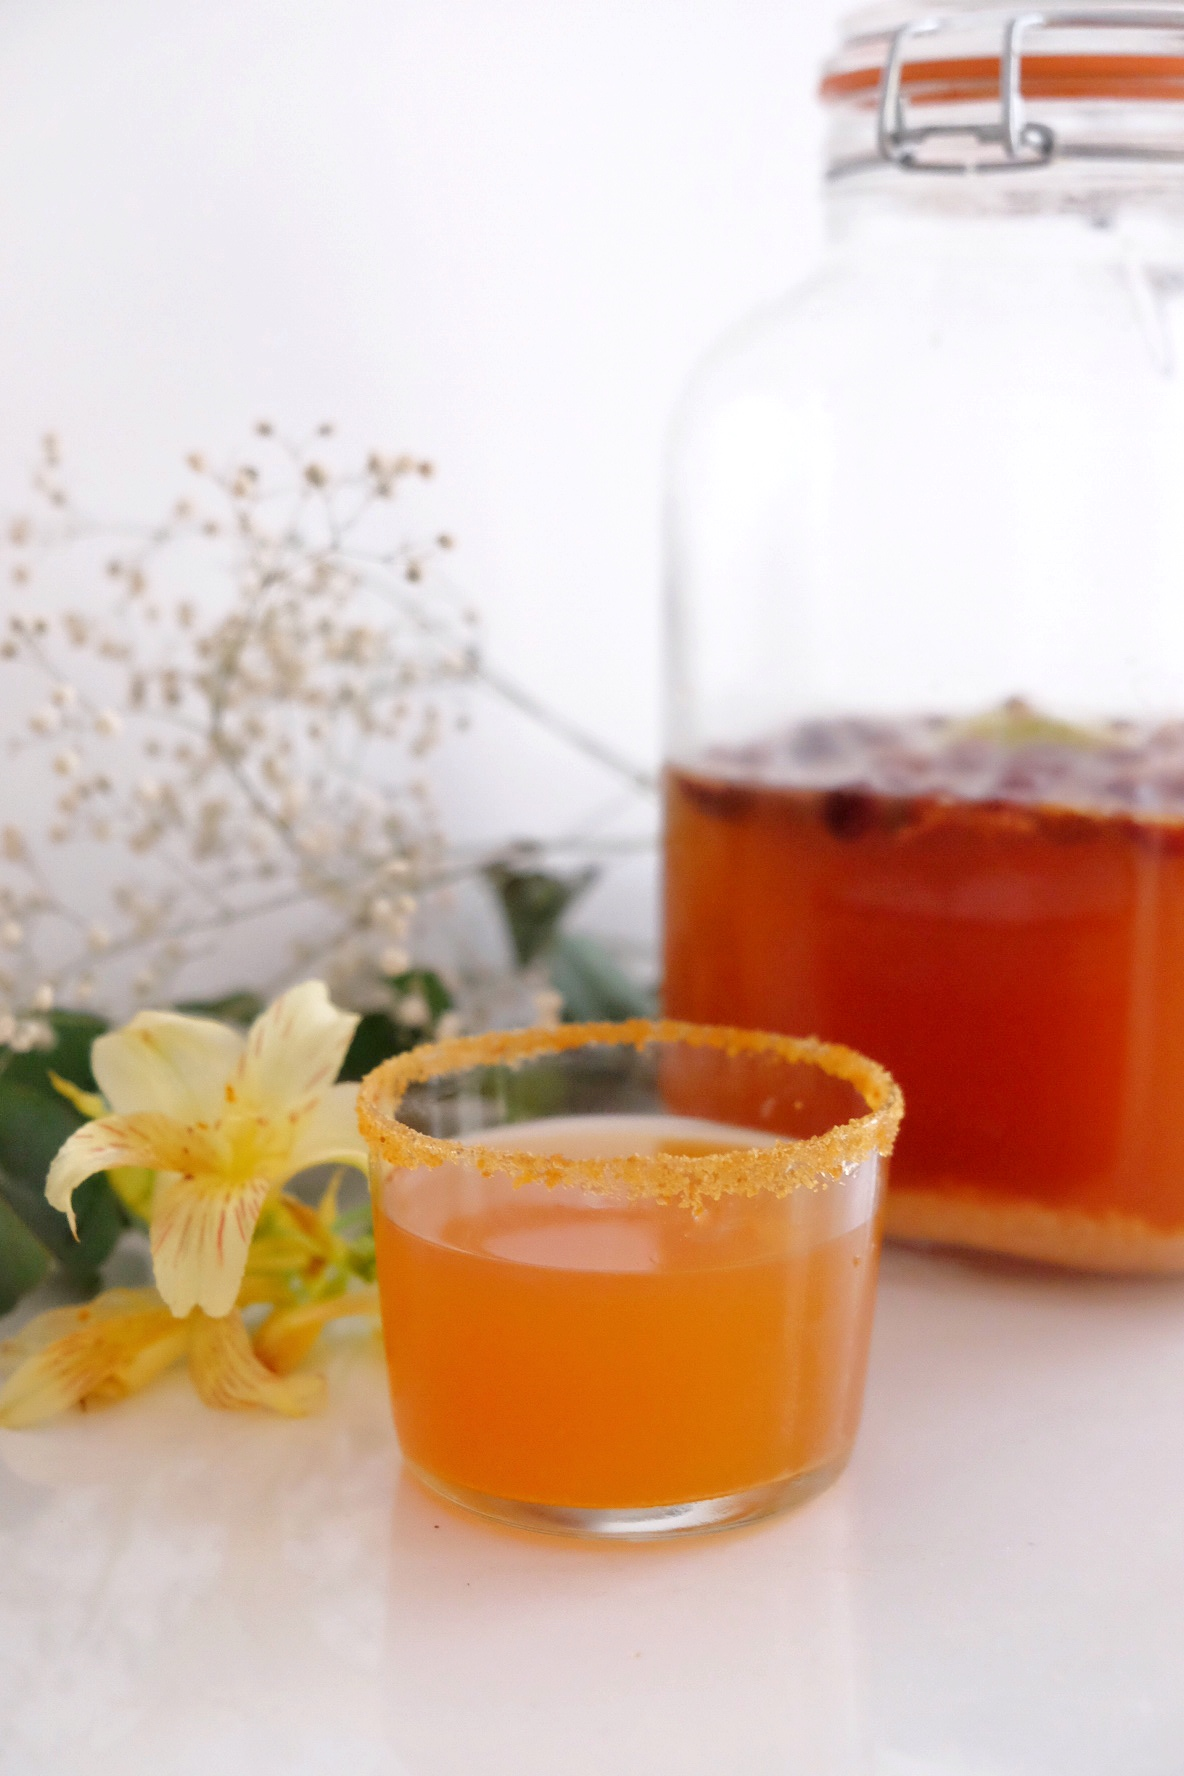 Water Kefir, an antibiotic drink